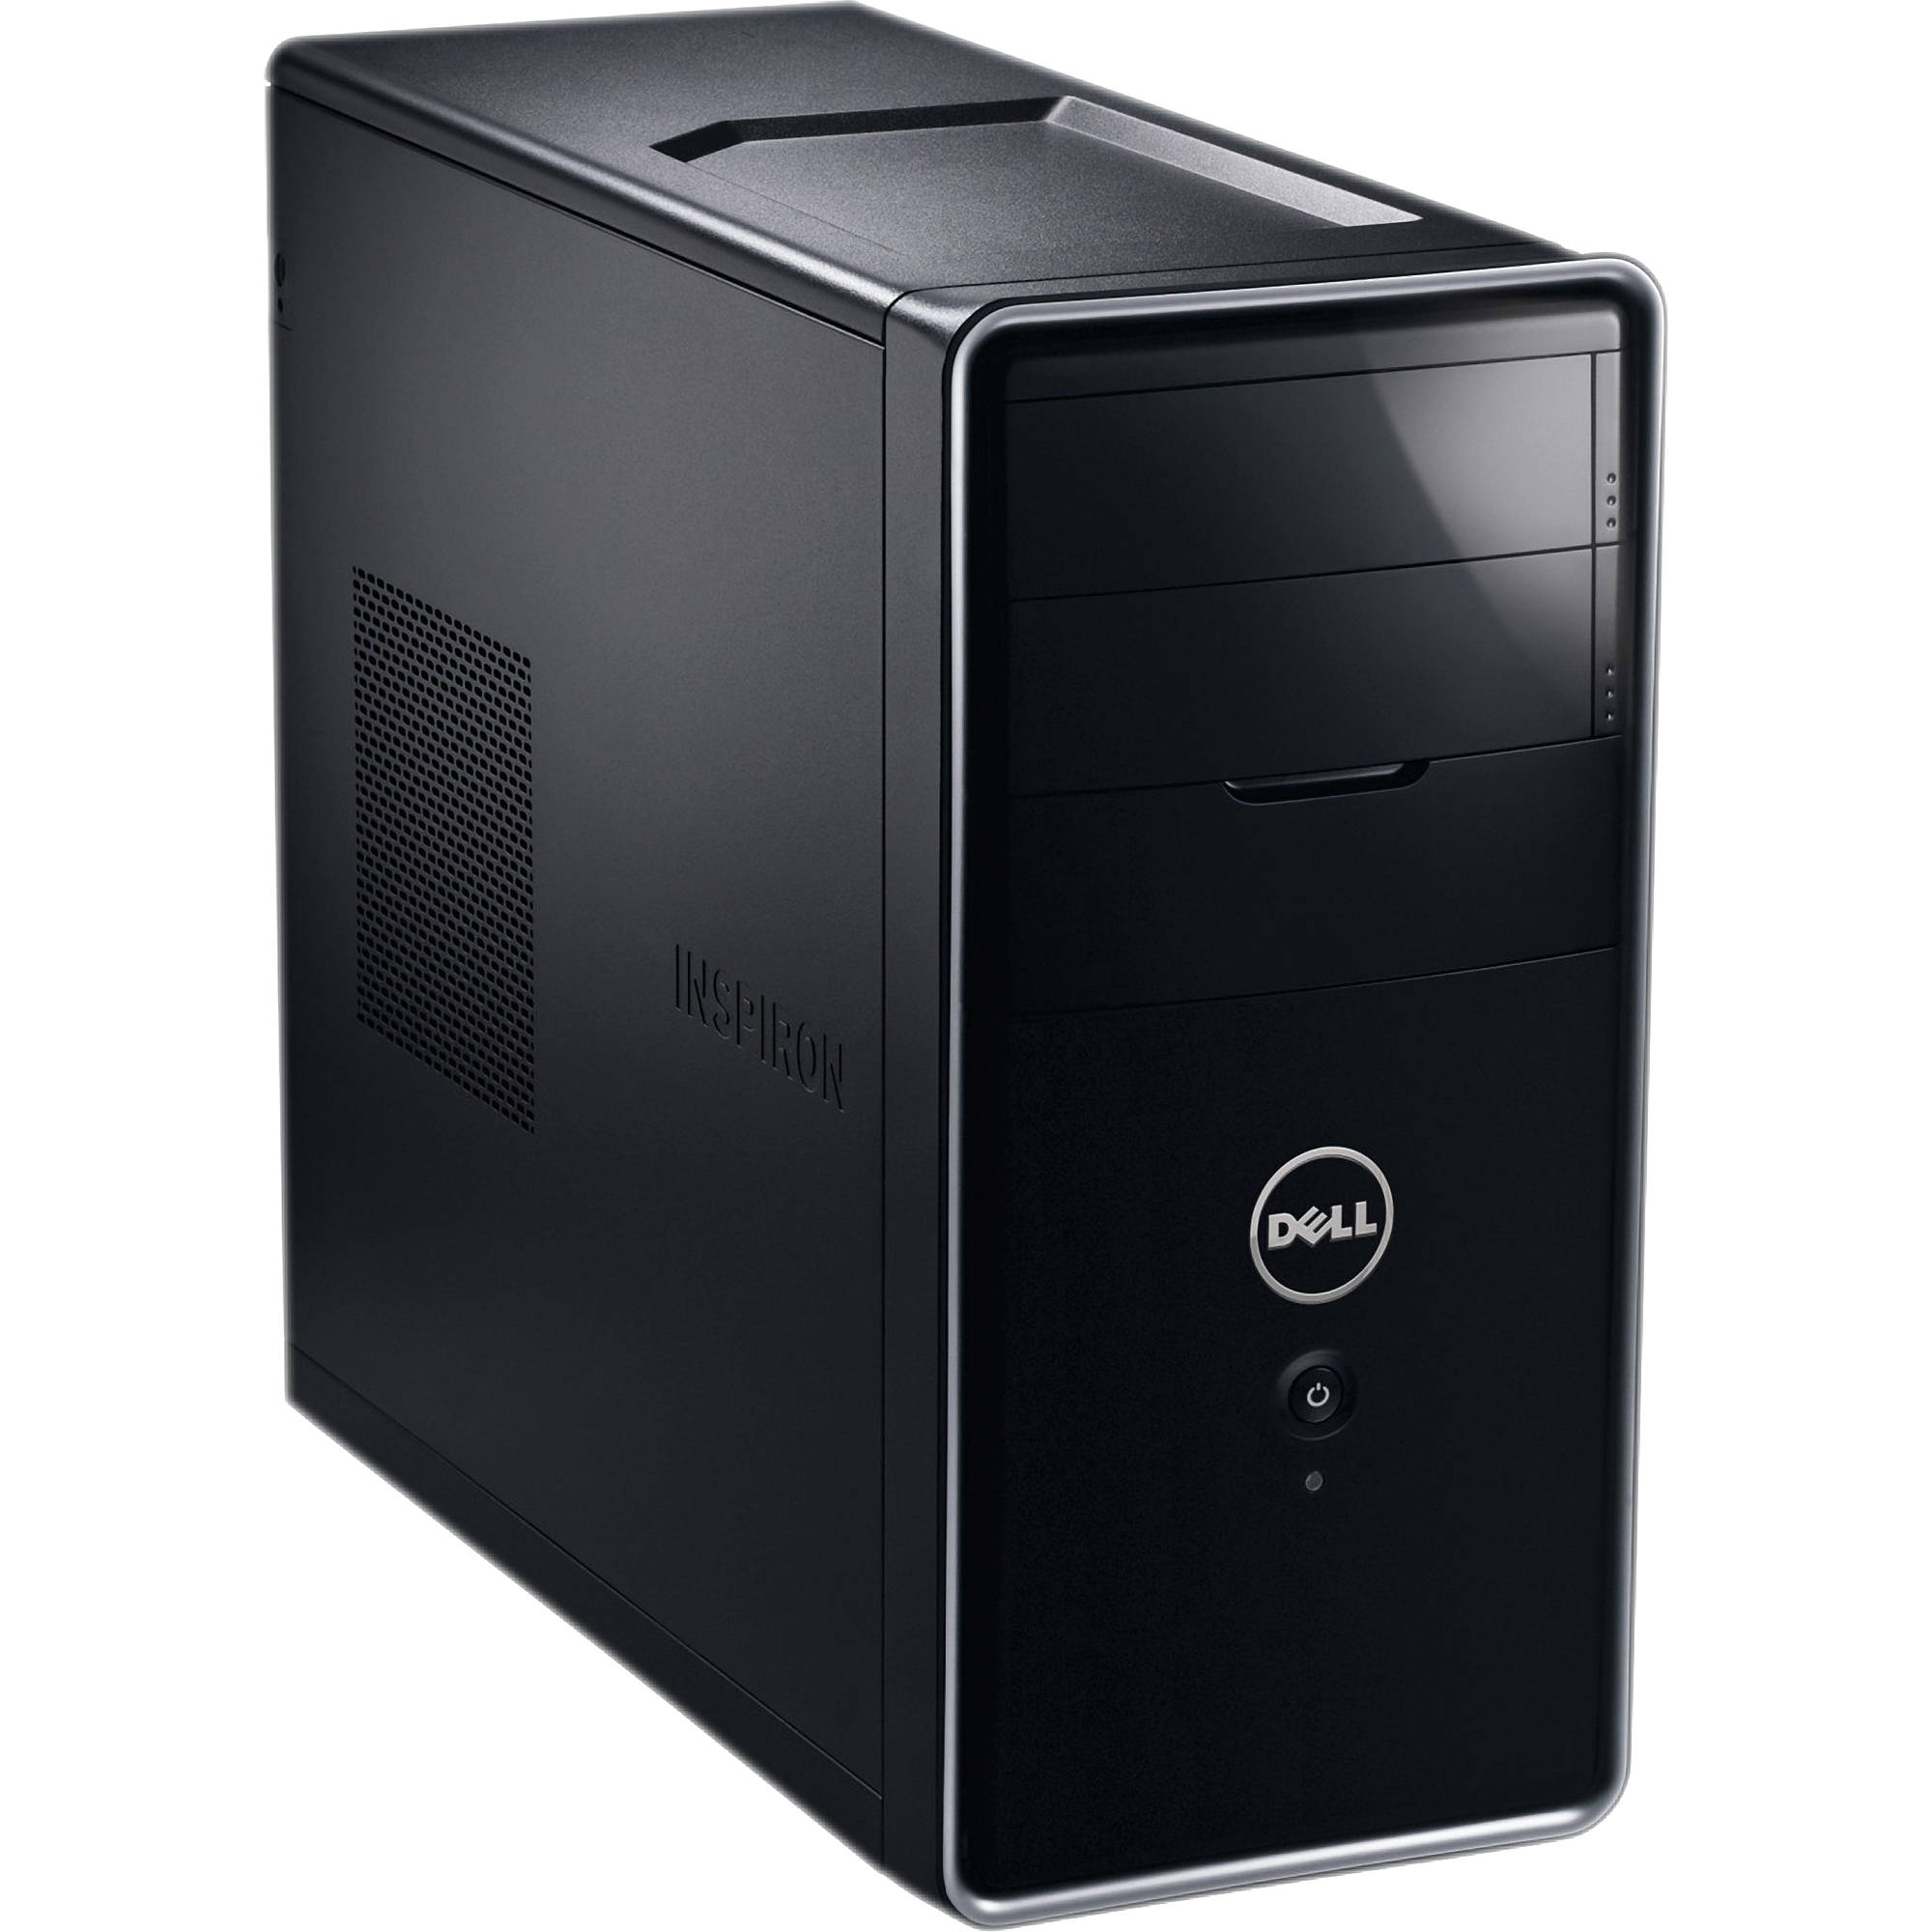 Dell Inspiron 570 Desktop Nvidia NV G310 VGA Windows